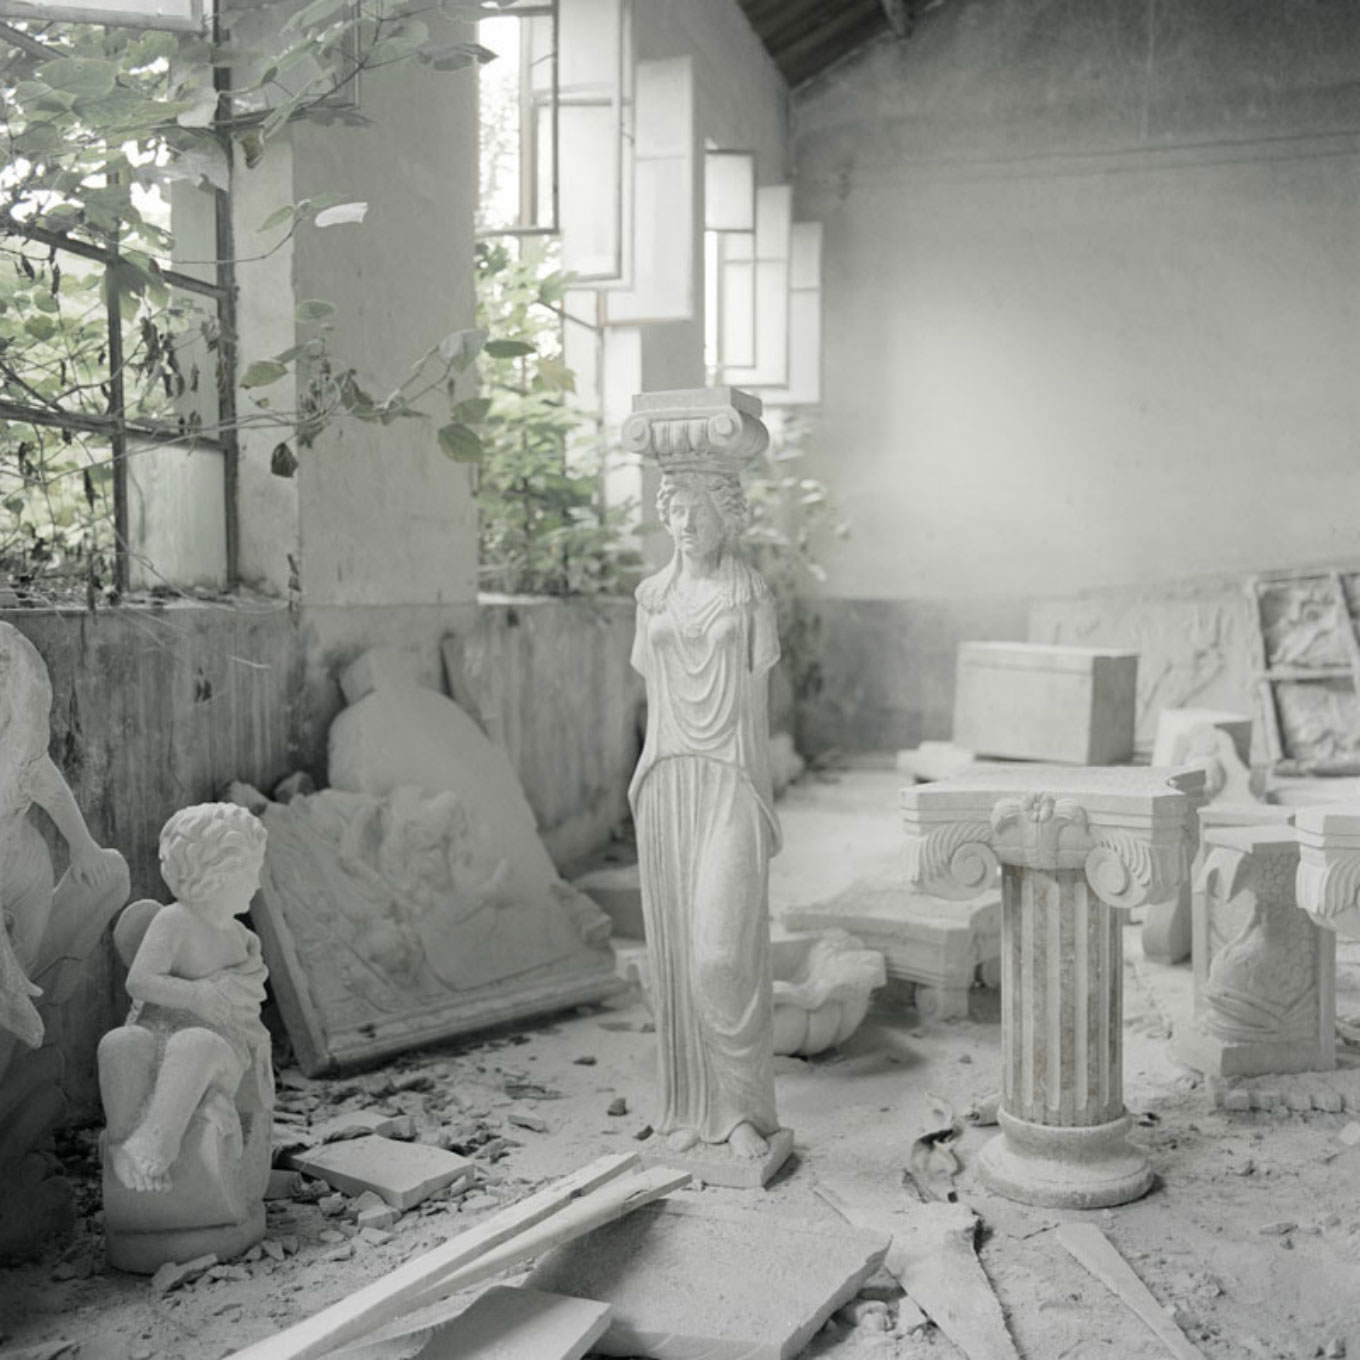 Design Free Thursday // Photos of Chinese Artists Reproducing Classical Sculptures.